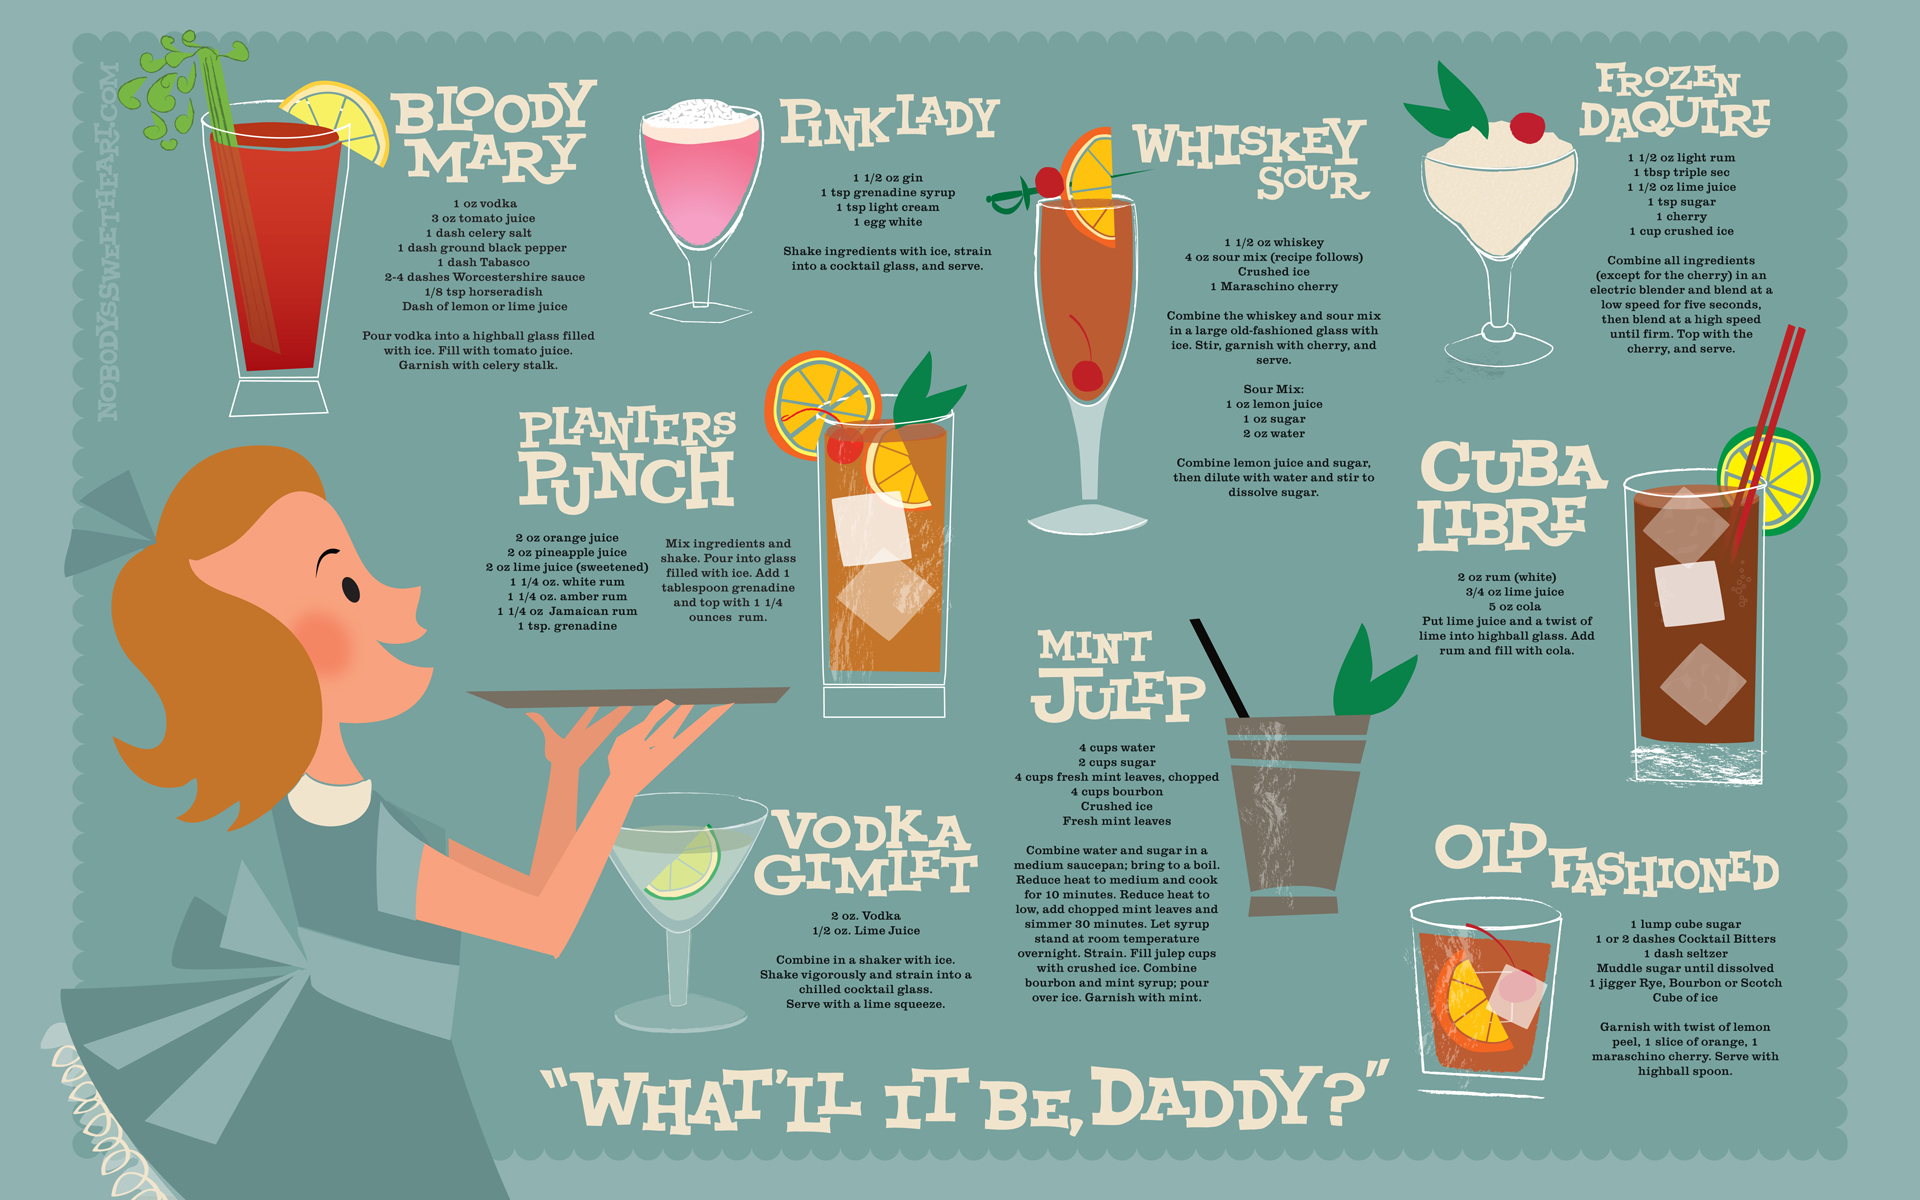 drinks-guide-for-entertaining_50290a6f0d373